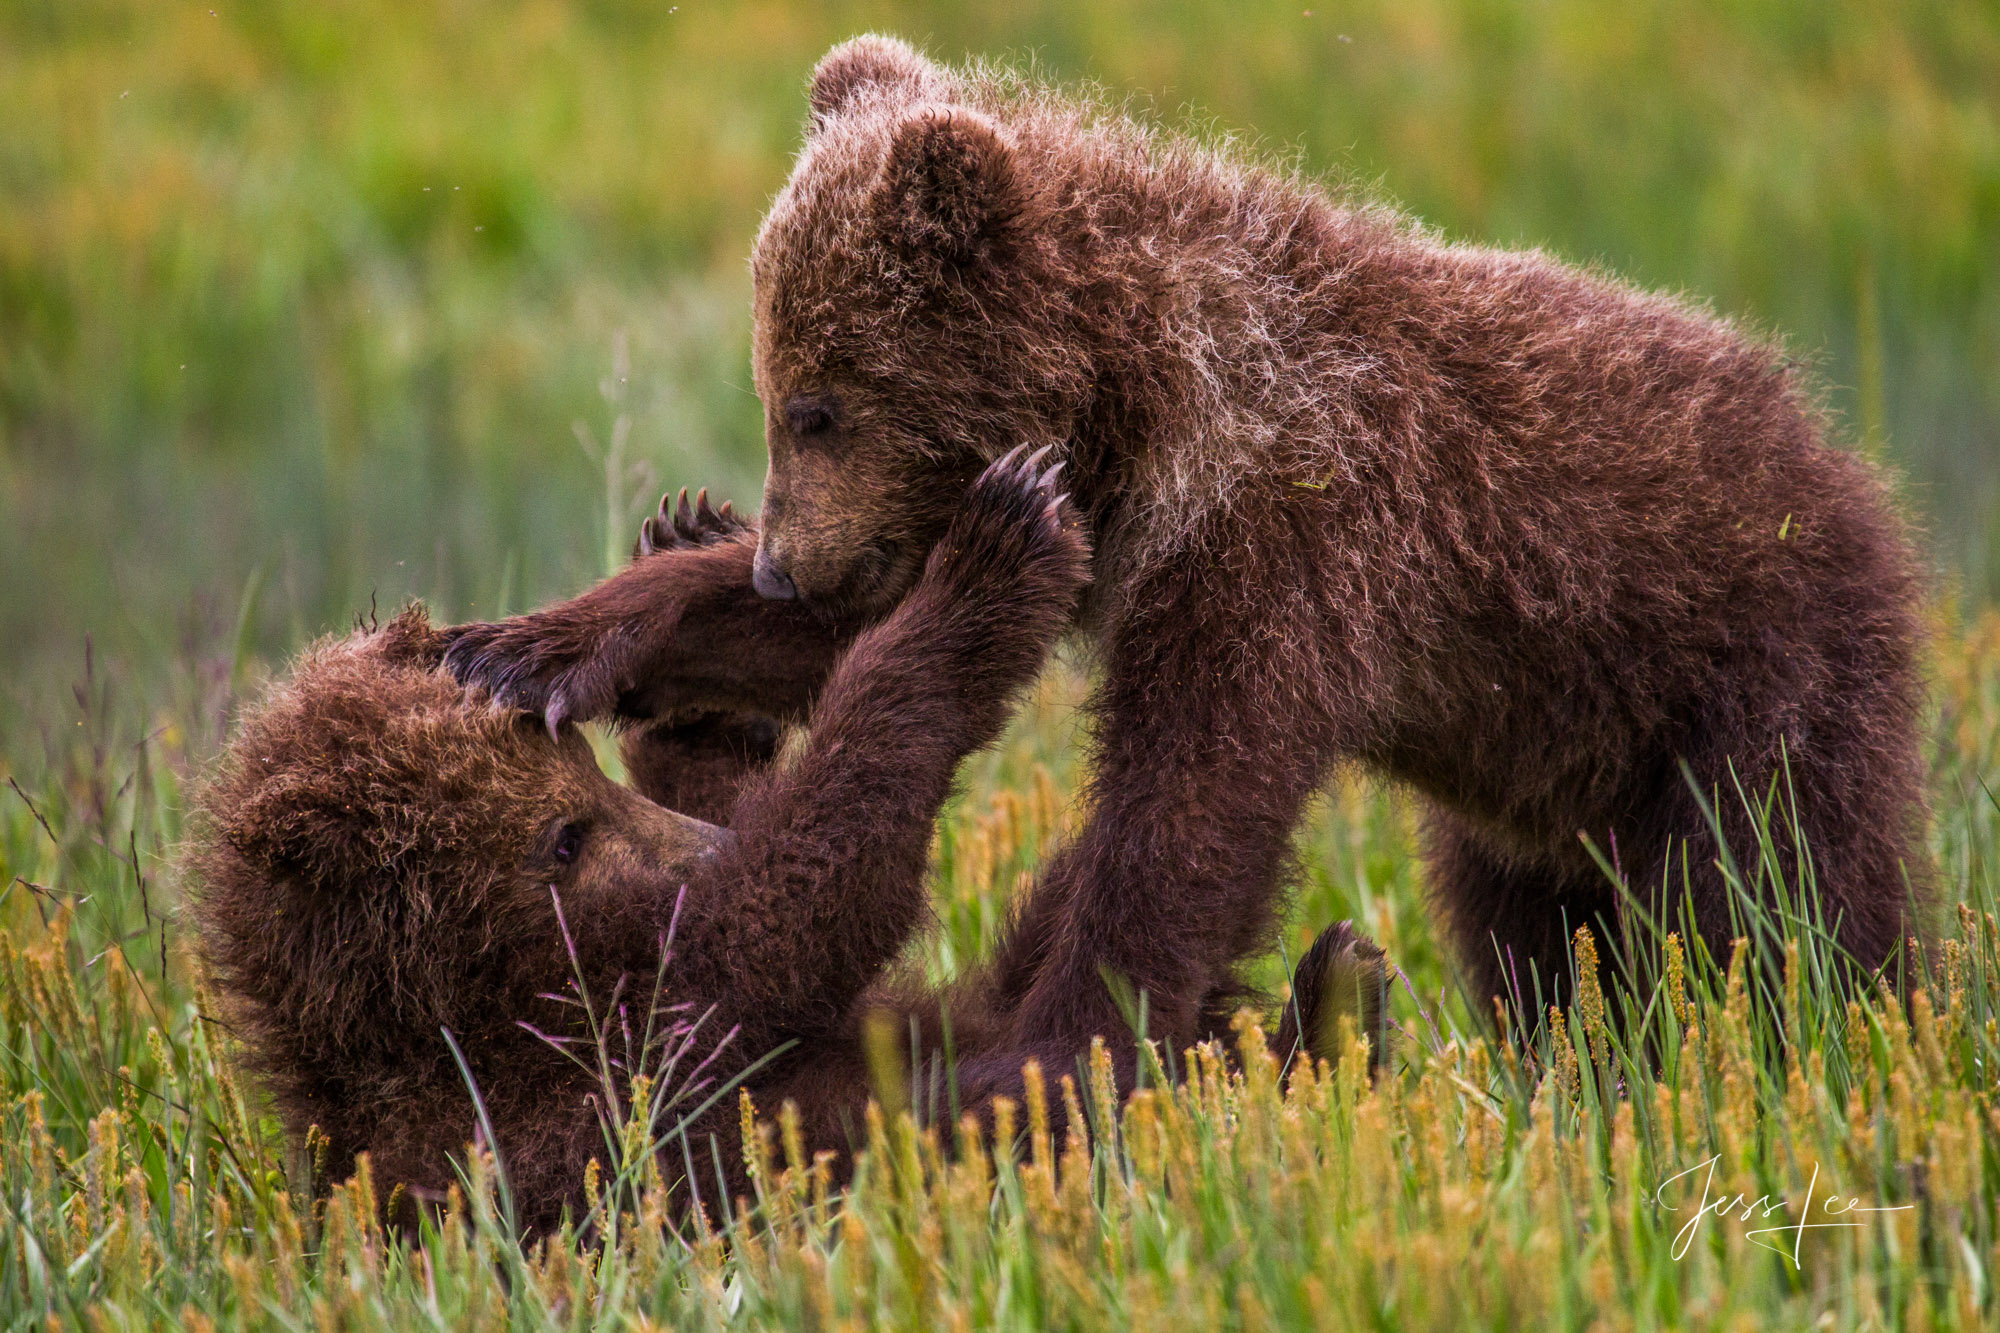 Alaska Grizzly Cubs wrestling a Limited edition of 800 prints. These Grizzly bear fine art wildlife photographs are offered as...